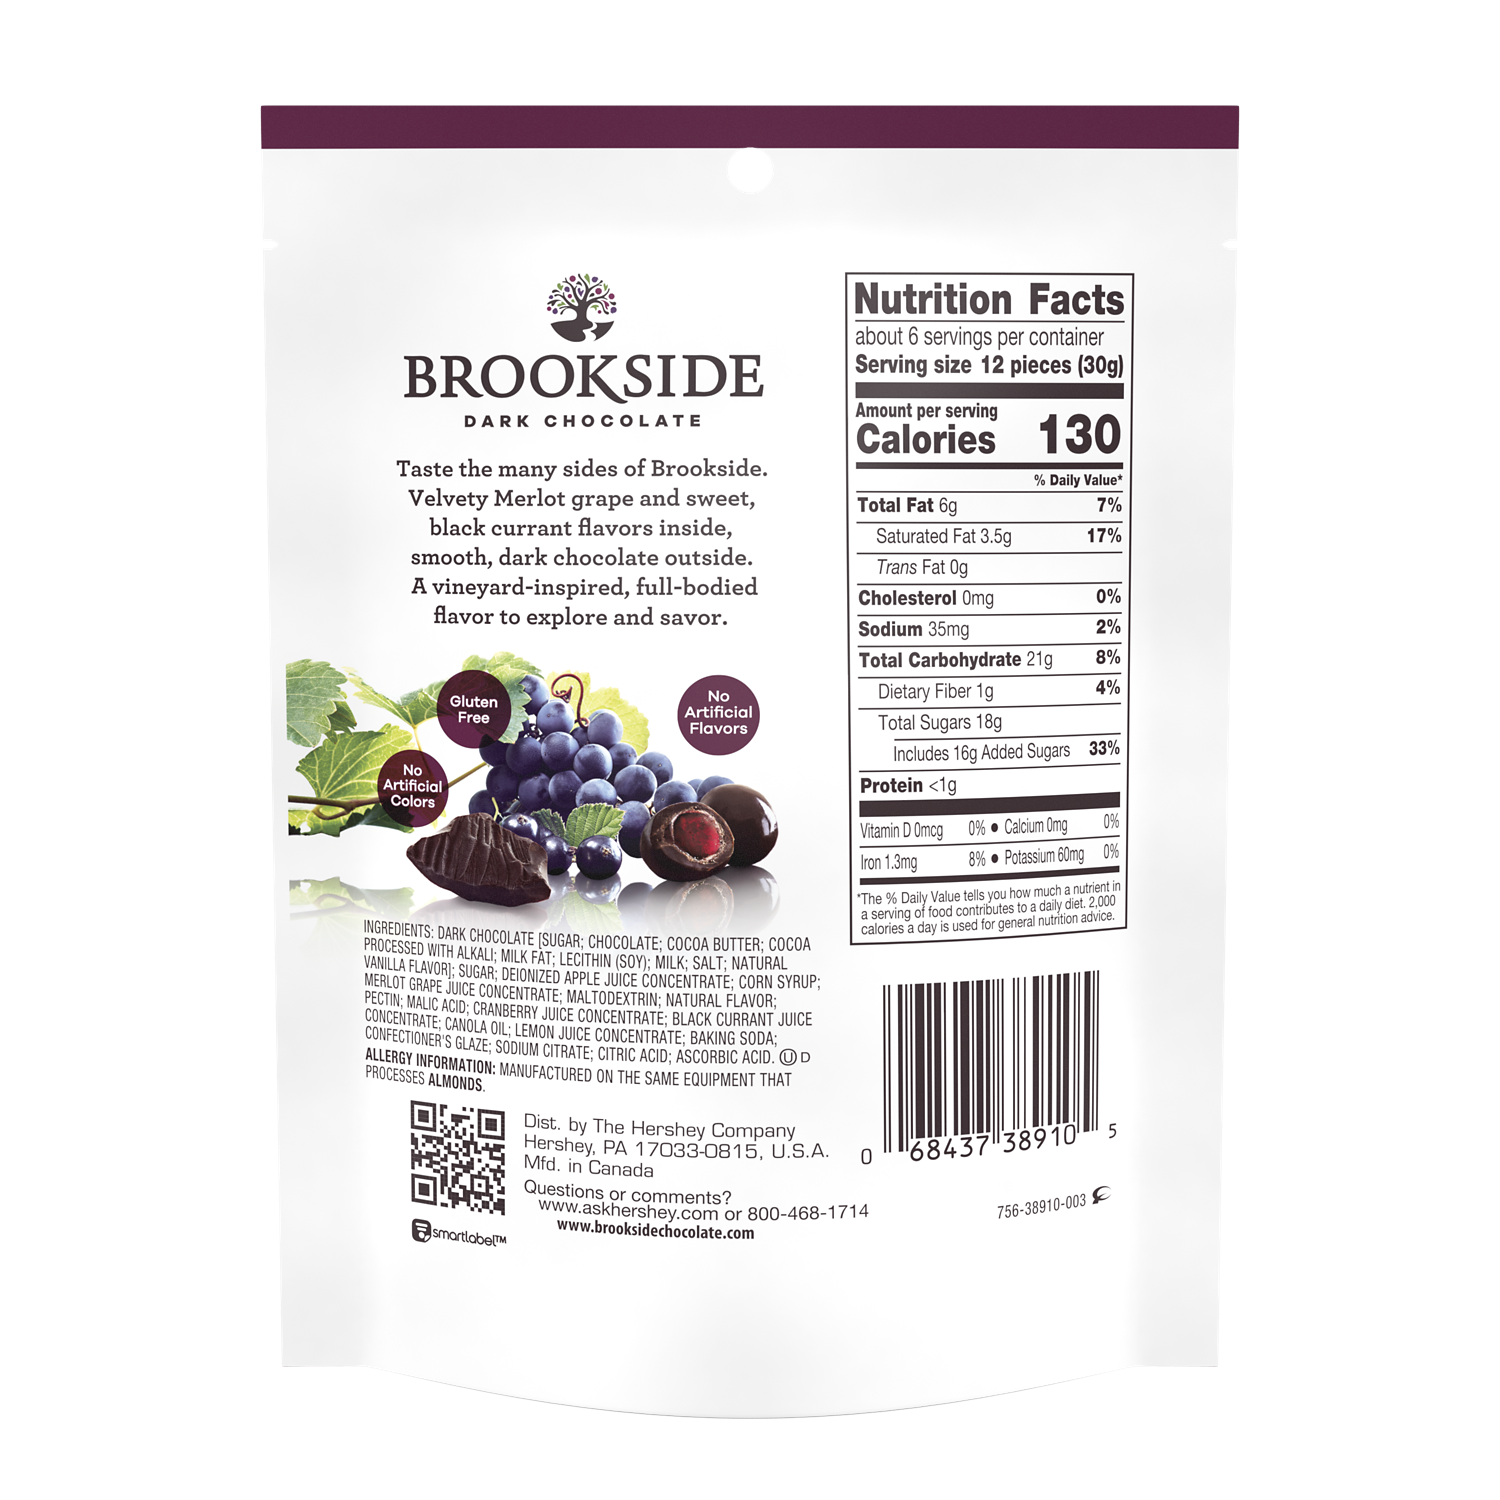 BROOKSIDE Dark Chocolate Vineyard Inspired Merlot Grape and Black Currant Flavors Candy, 6 oz bag - Back of Package